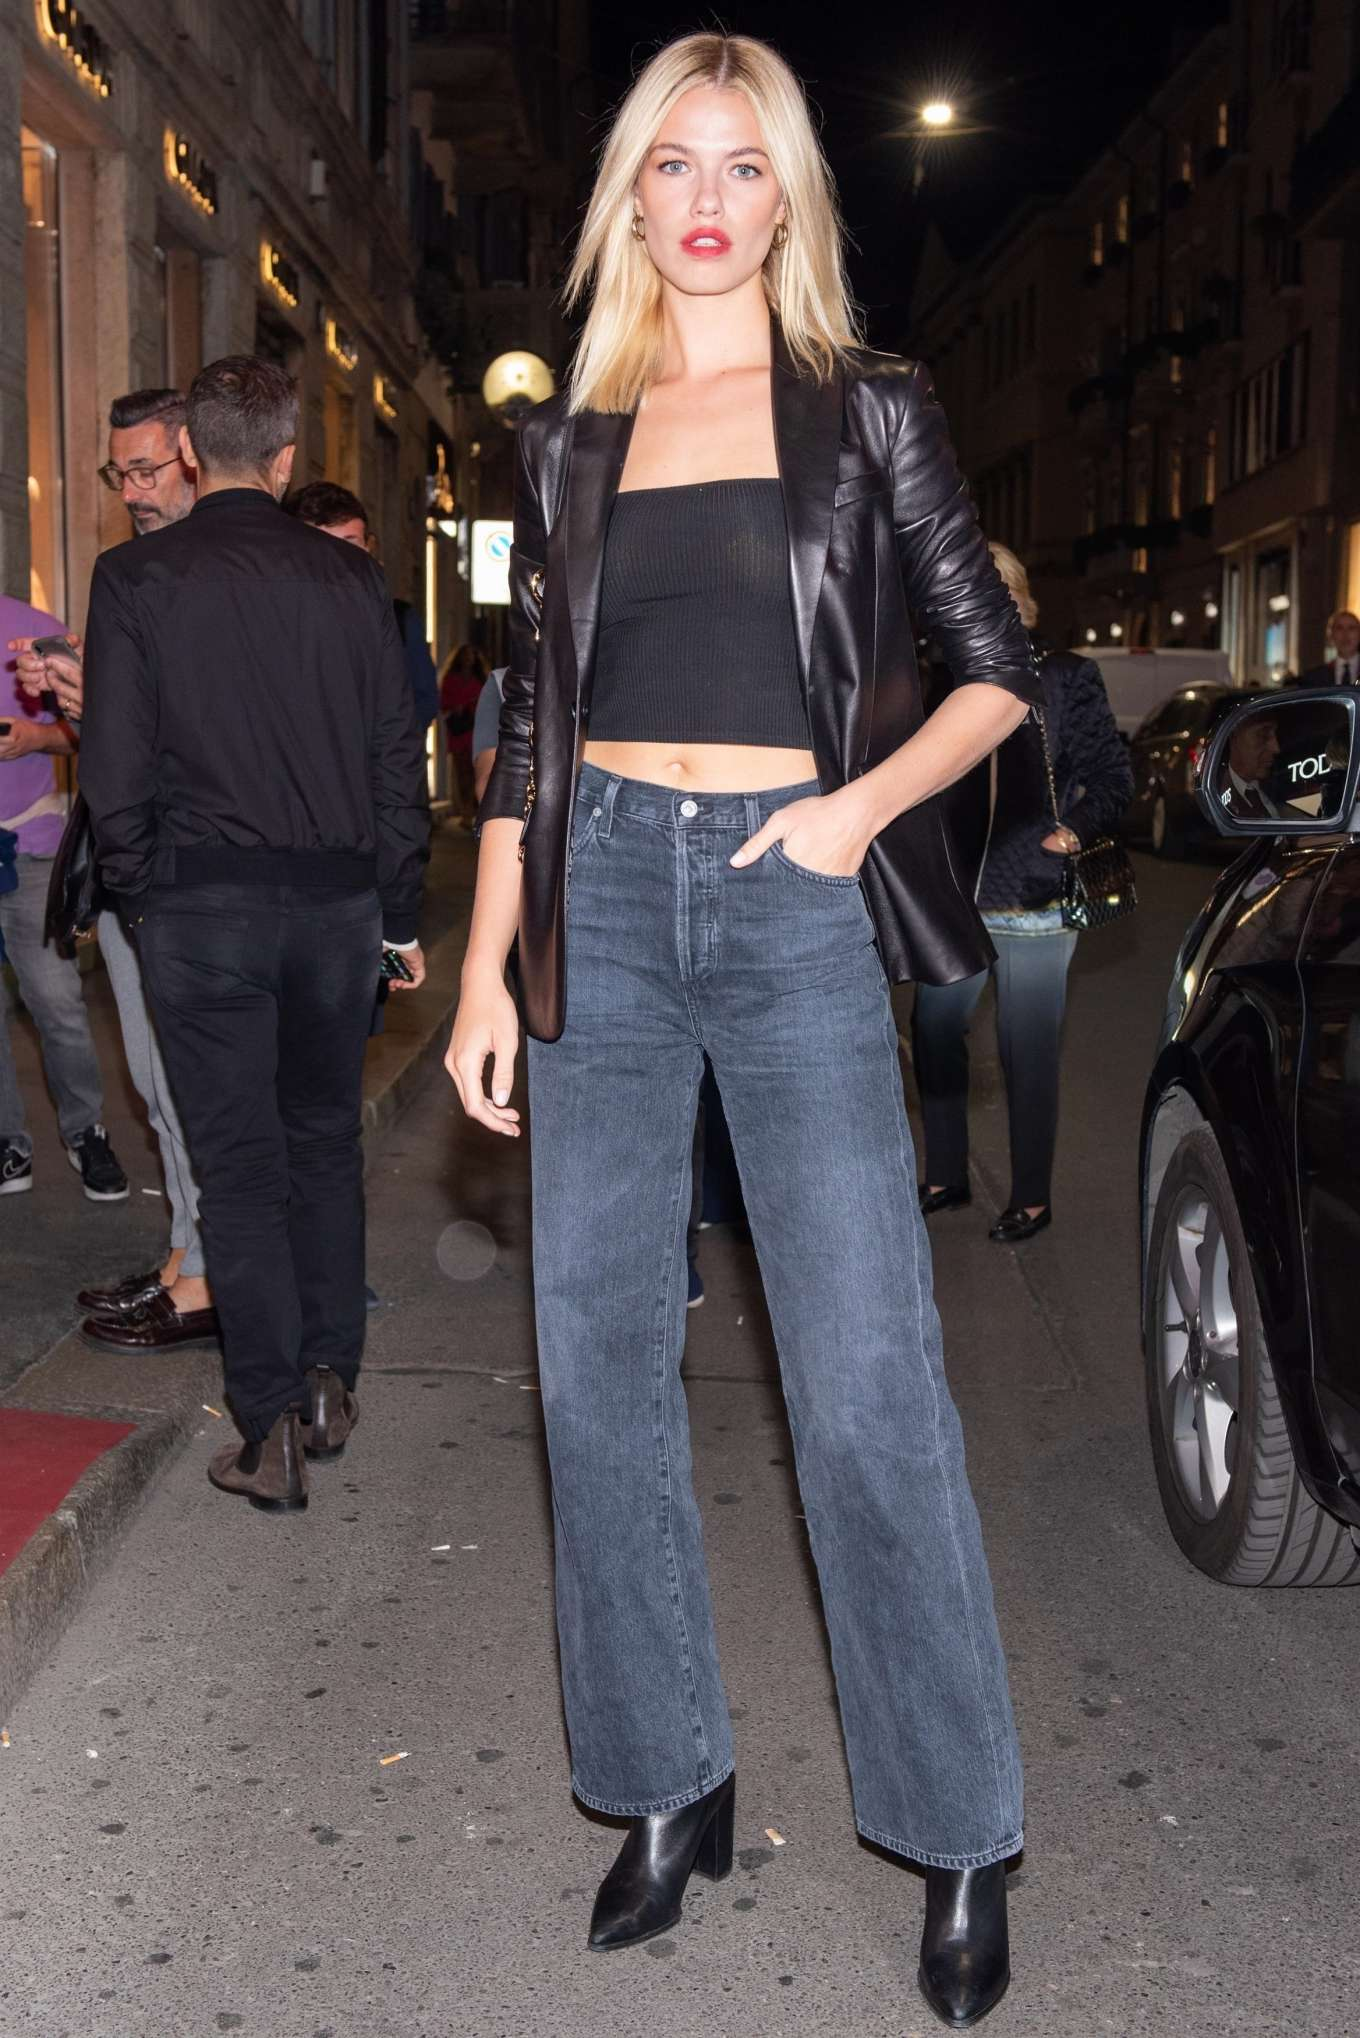 Hailey Clauson 2019 : Hailey Clauson – Arrives at Tods store opening at Milan Fashion Week-04